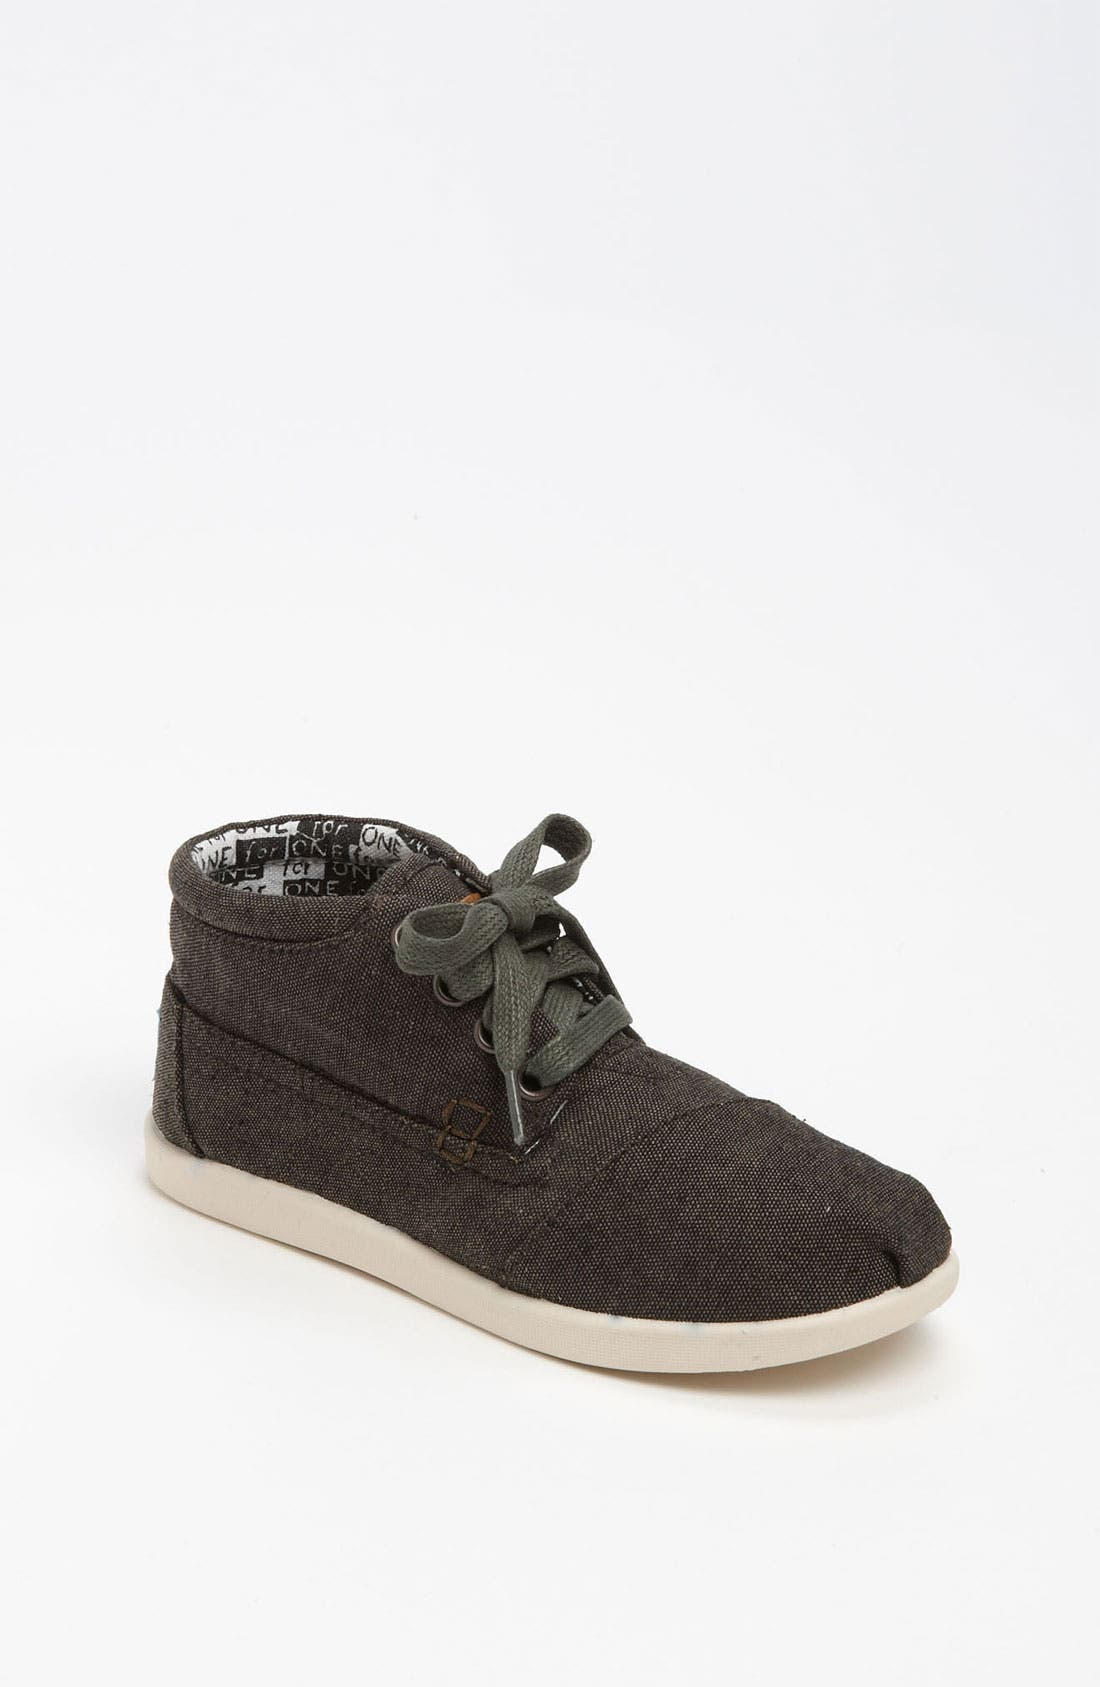 Alternate Image 1 Selected - TOMS 'Botas - Youth' Chambray Boot (Toddler, Little Kid & Big Kid)